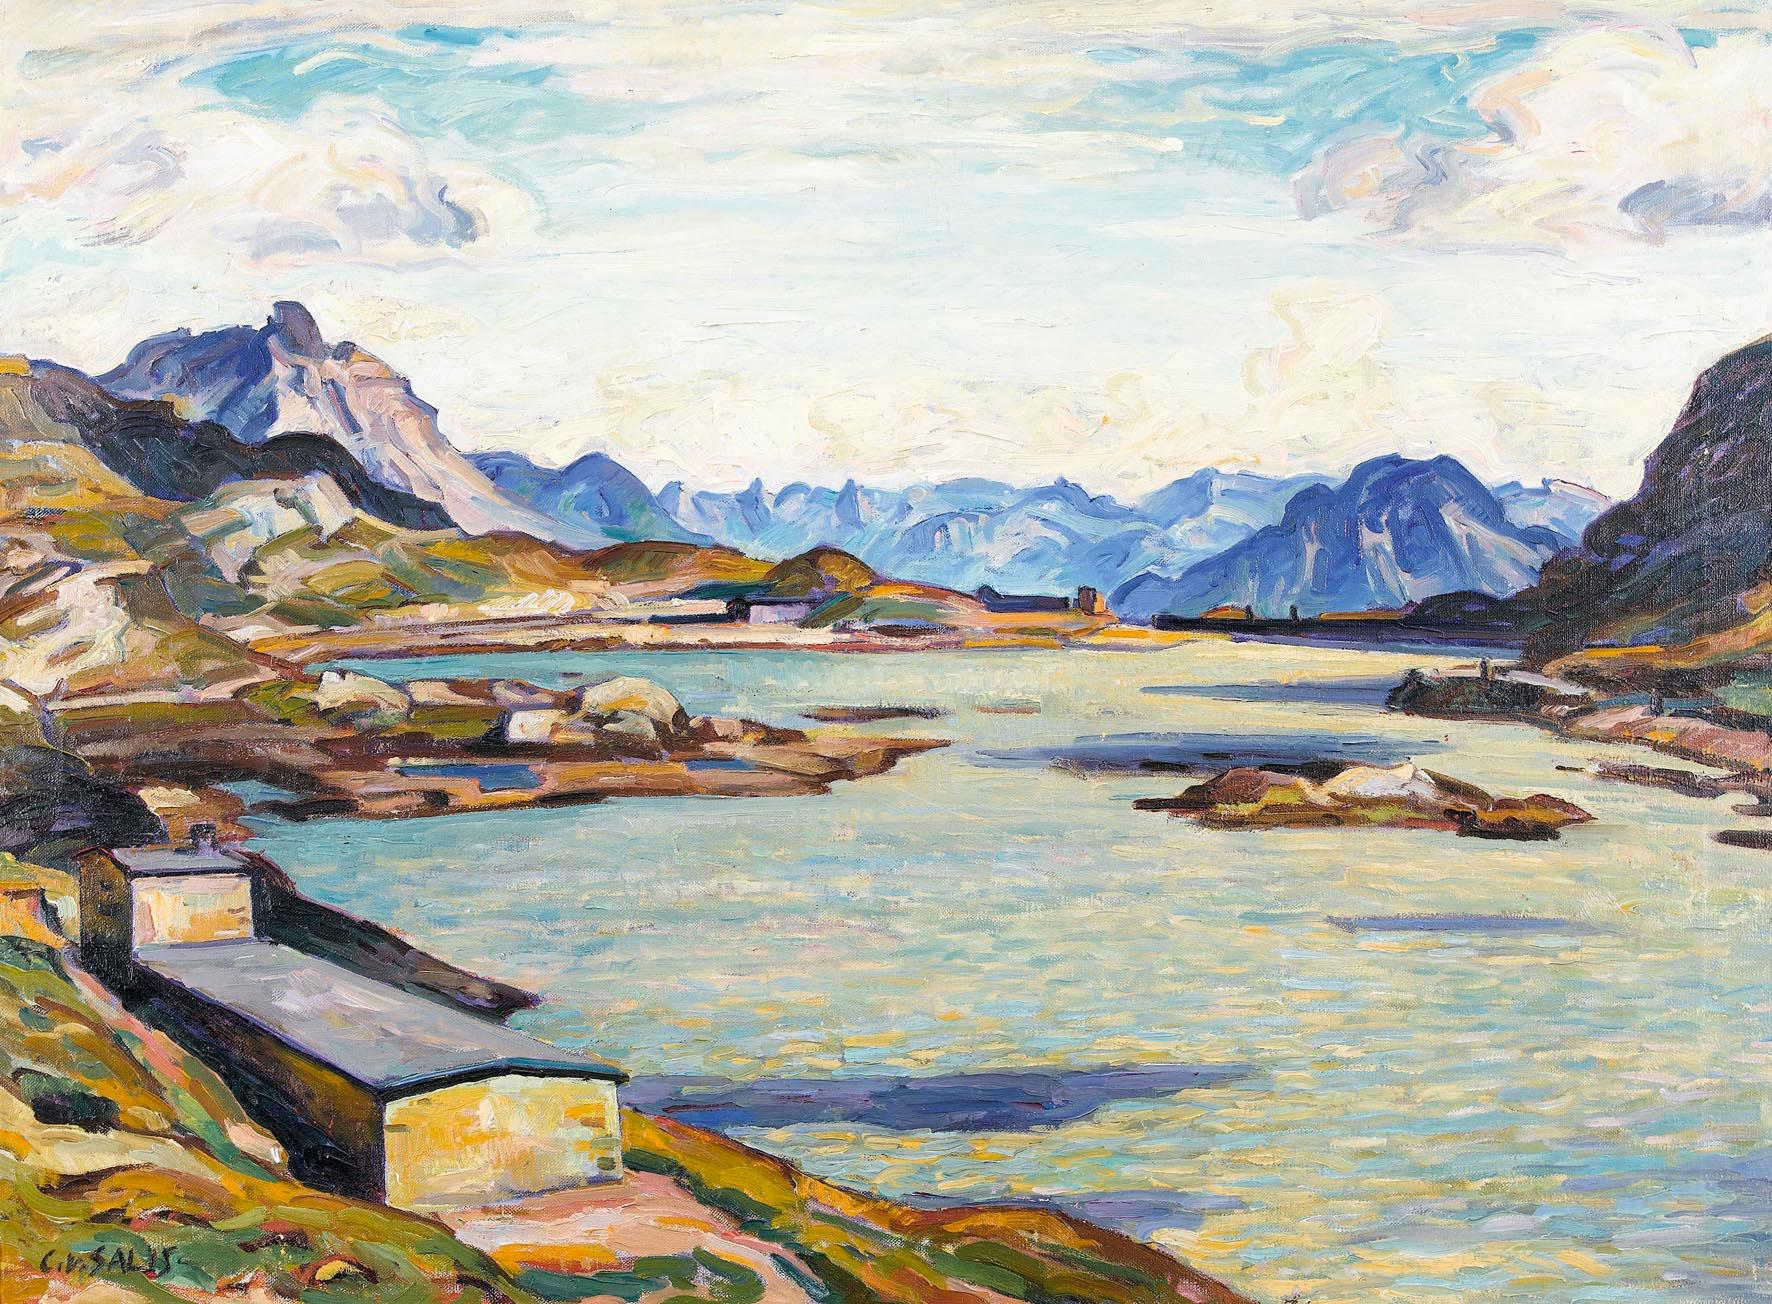 Carl Albert von Salis, Lago Bianco am Berninapass